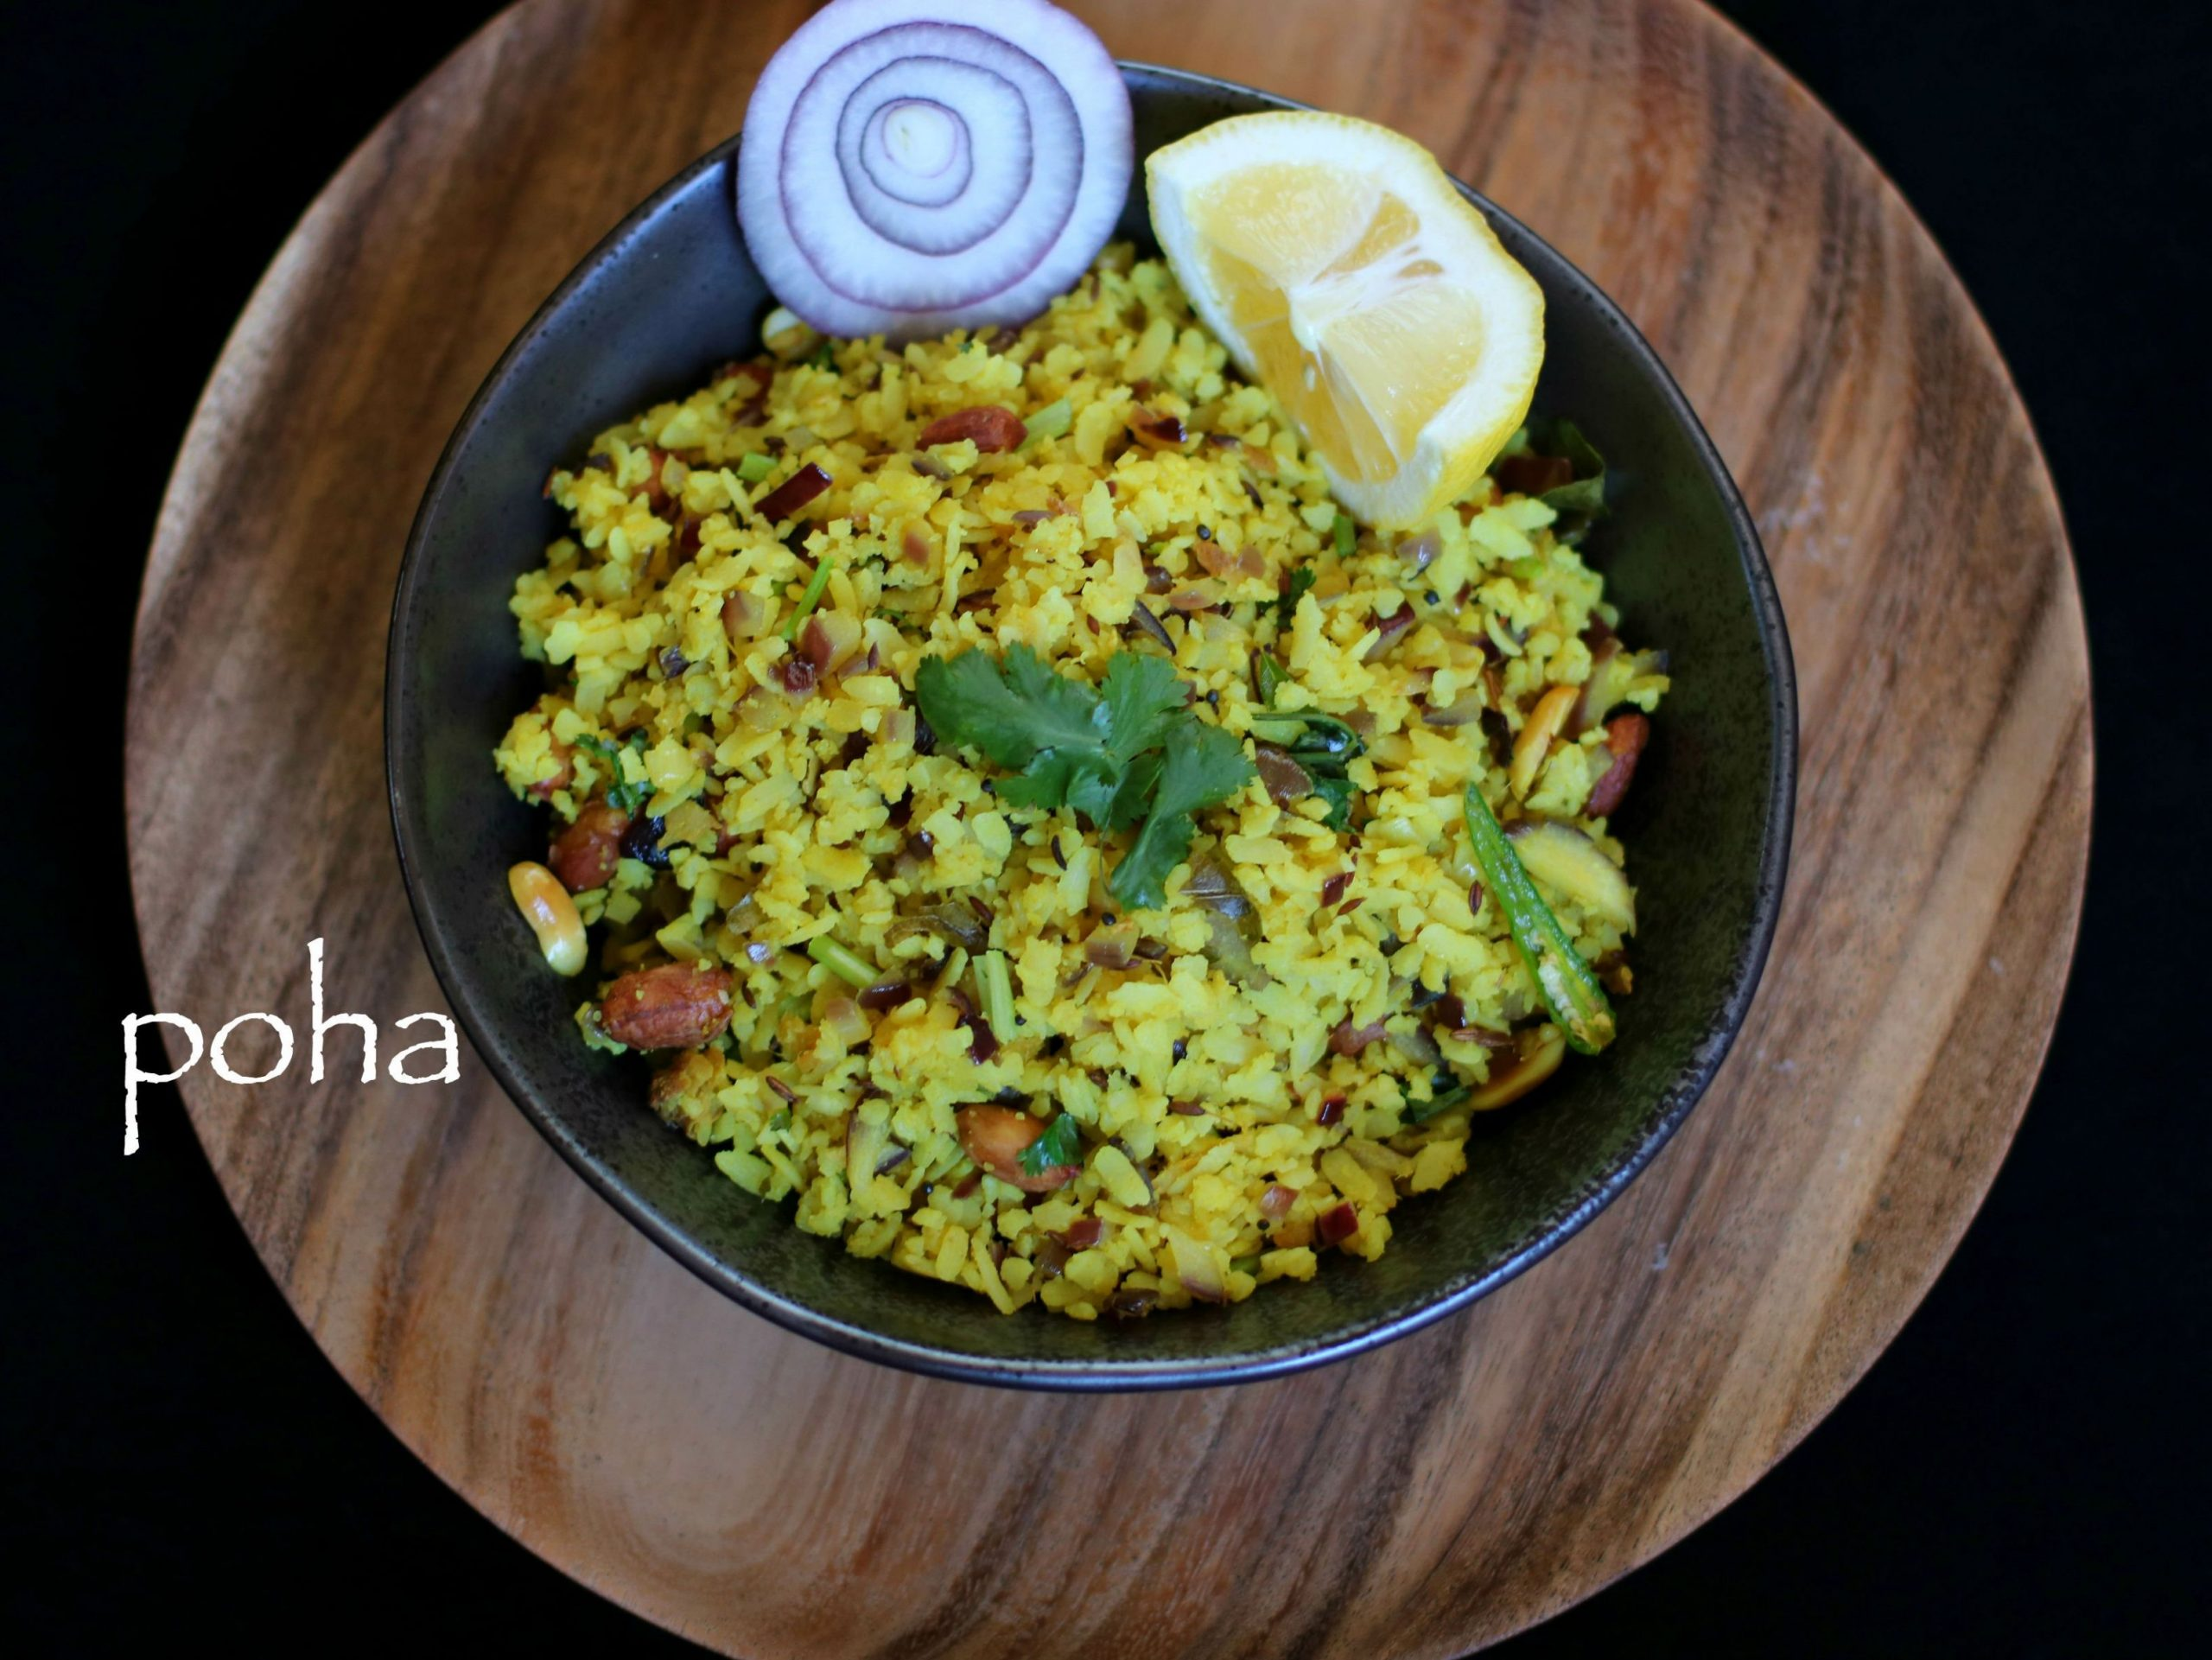 khara avalakki recipe | karnataka style poha recipe - Breakfast Recipes Karnataka